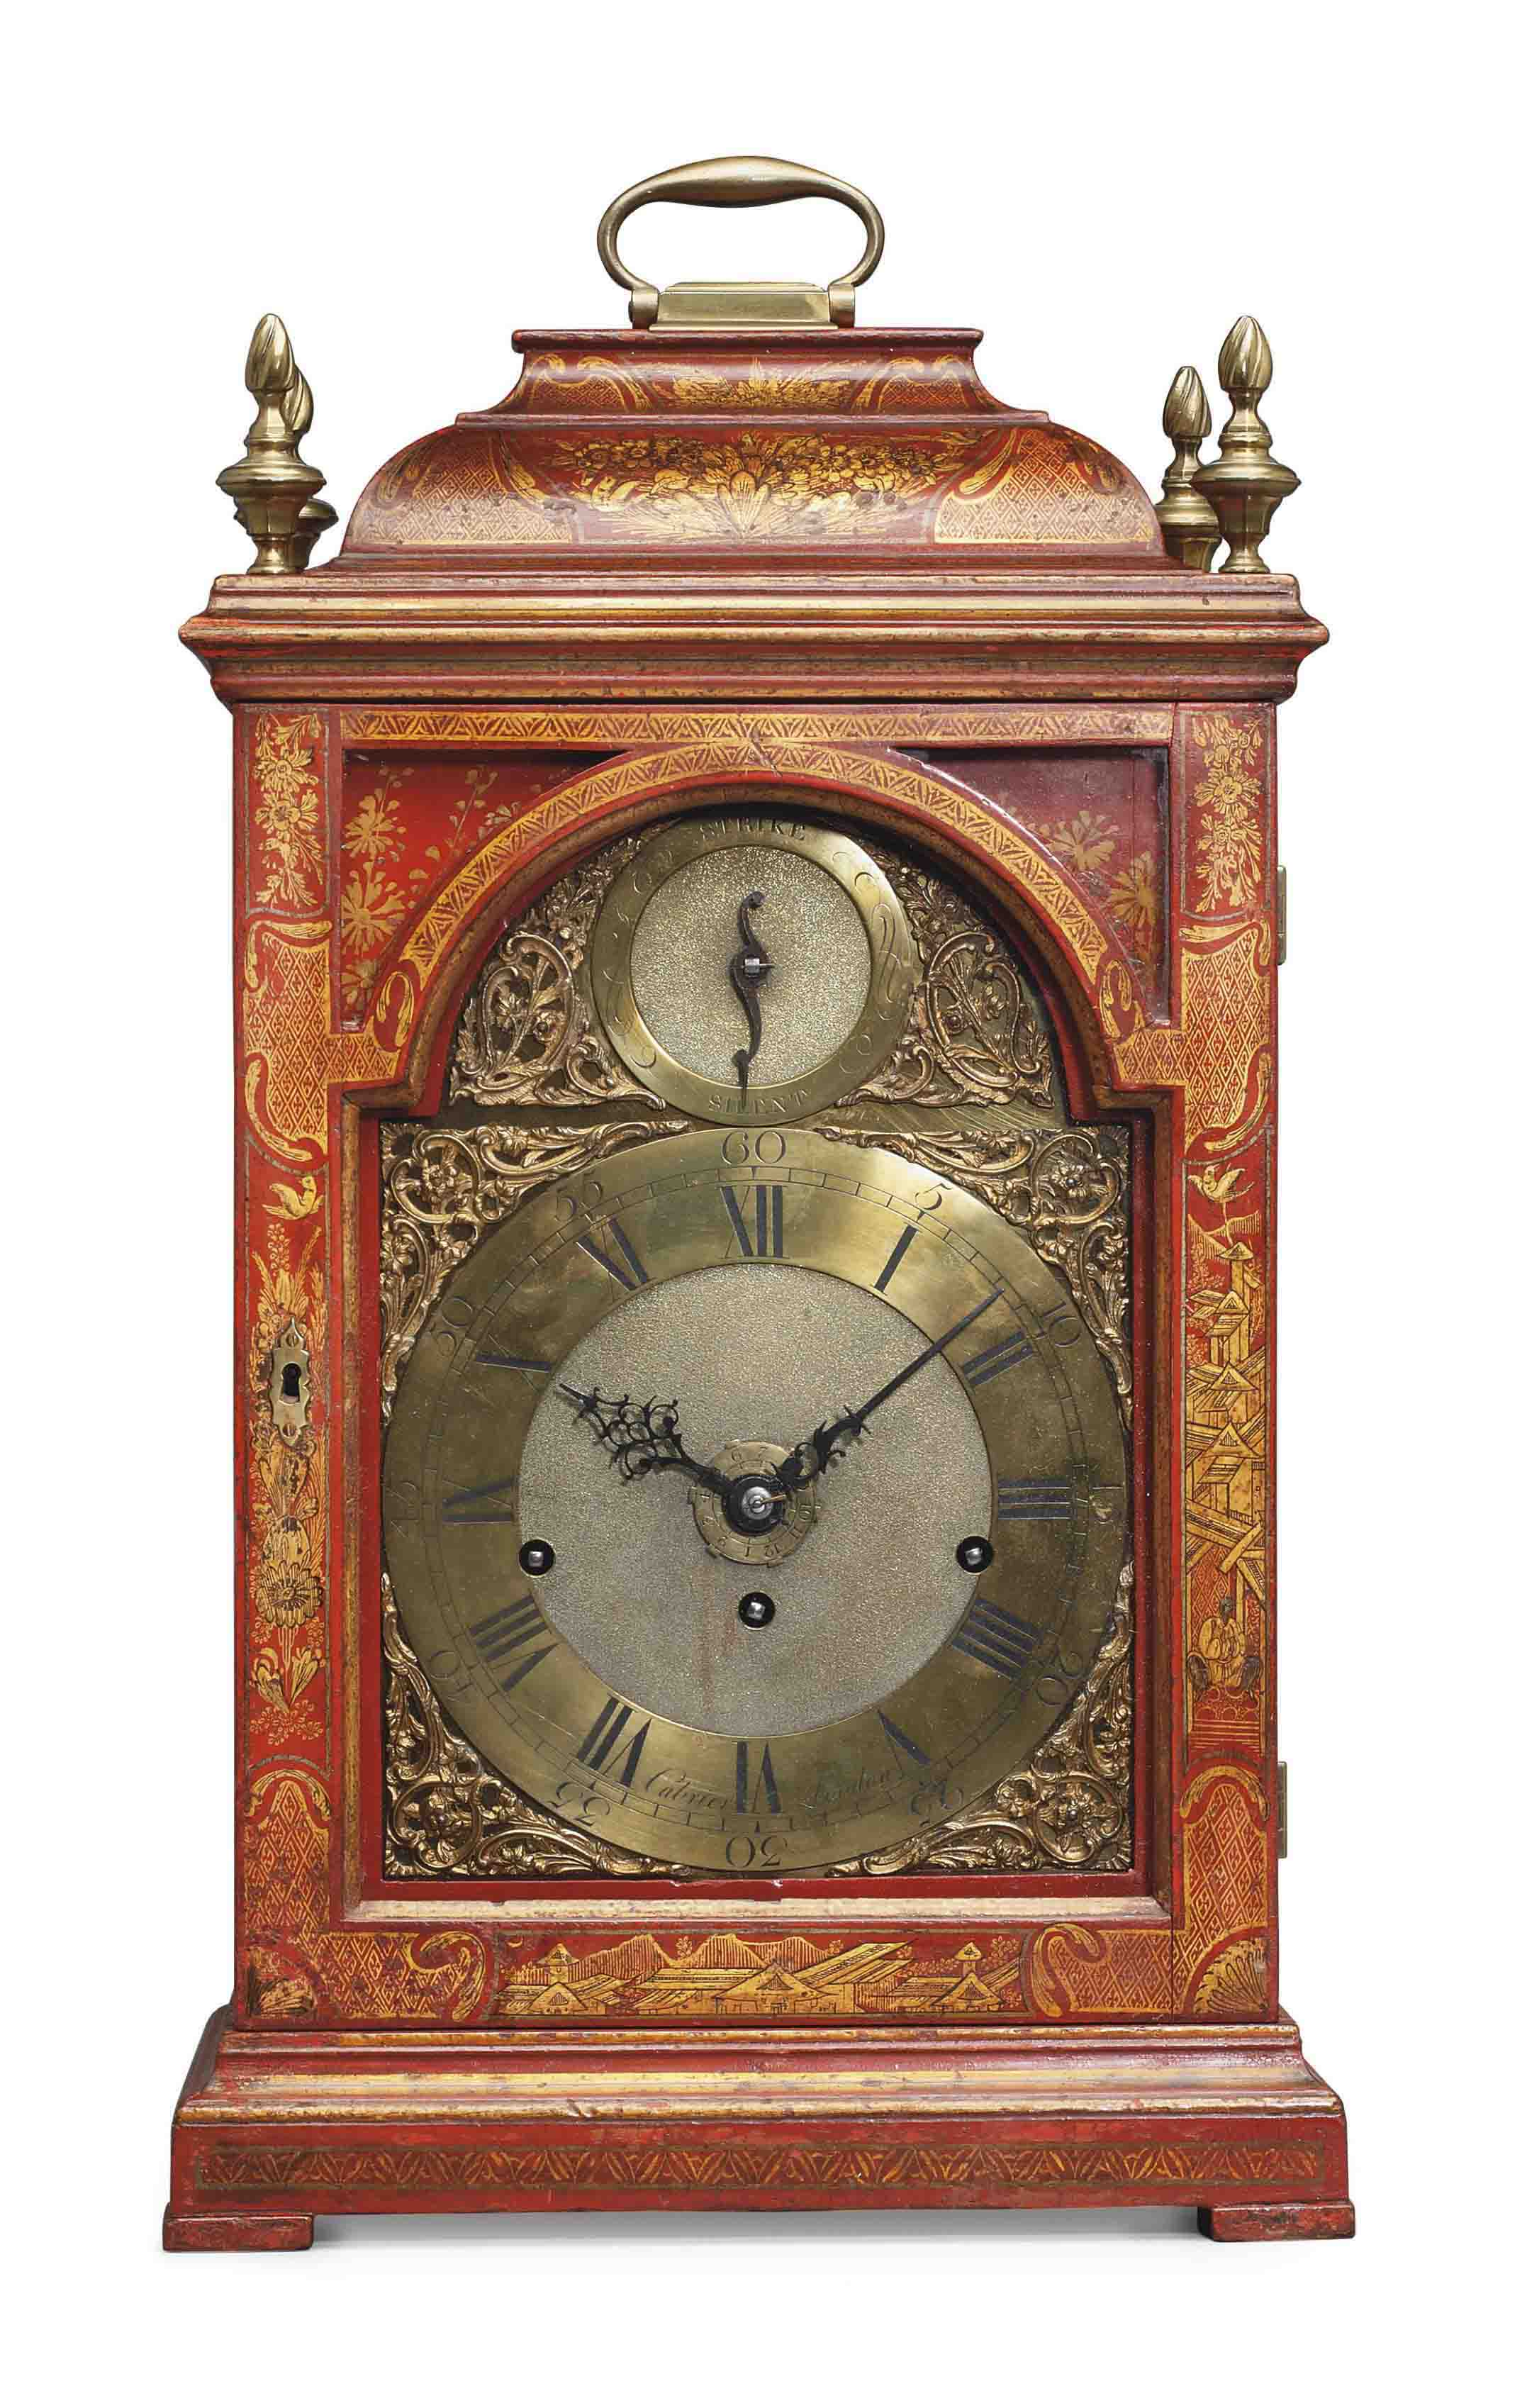 A GEORGE II BRASS-MOUNTED RED AND GILT-JAPANNED QUARTER-CHIMING EIGHT DAY TABLE CLOCK WITH ALARM